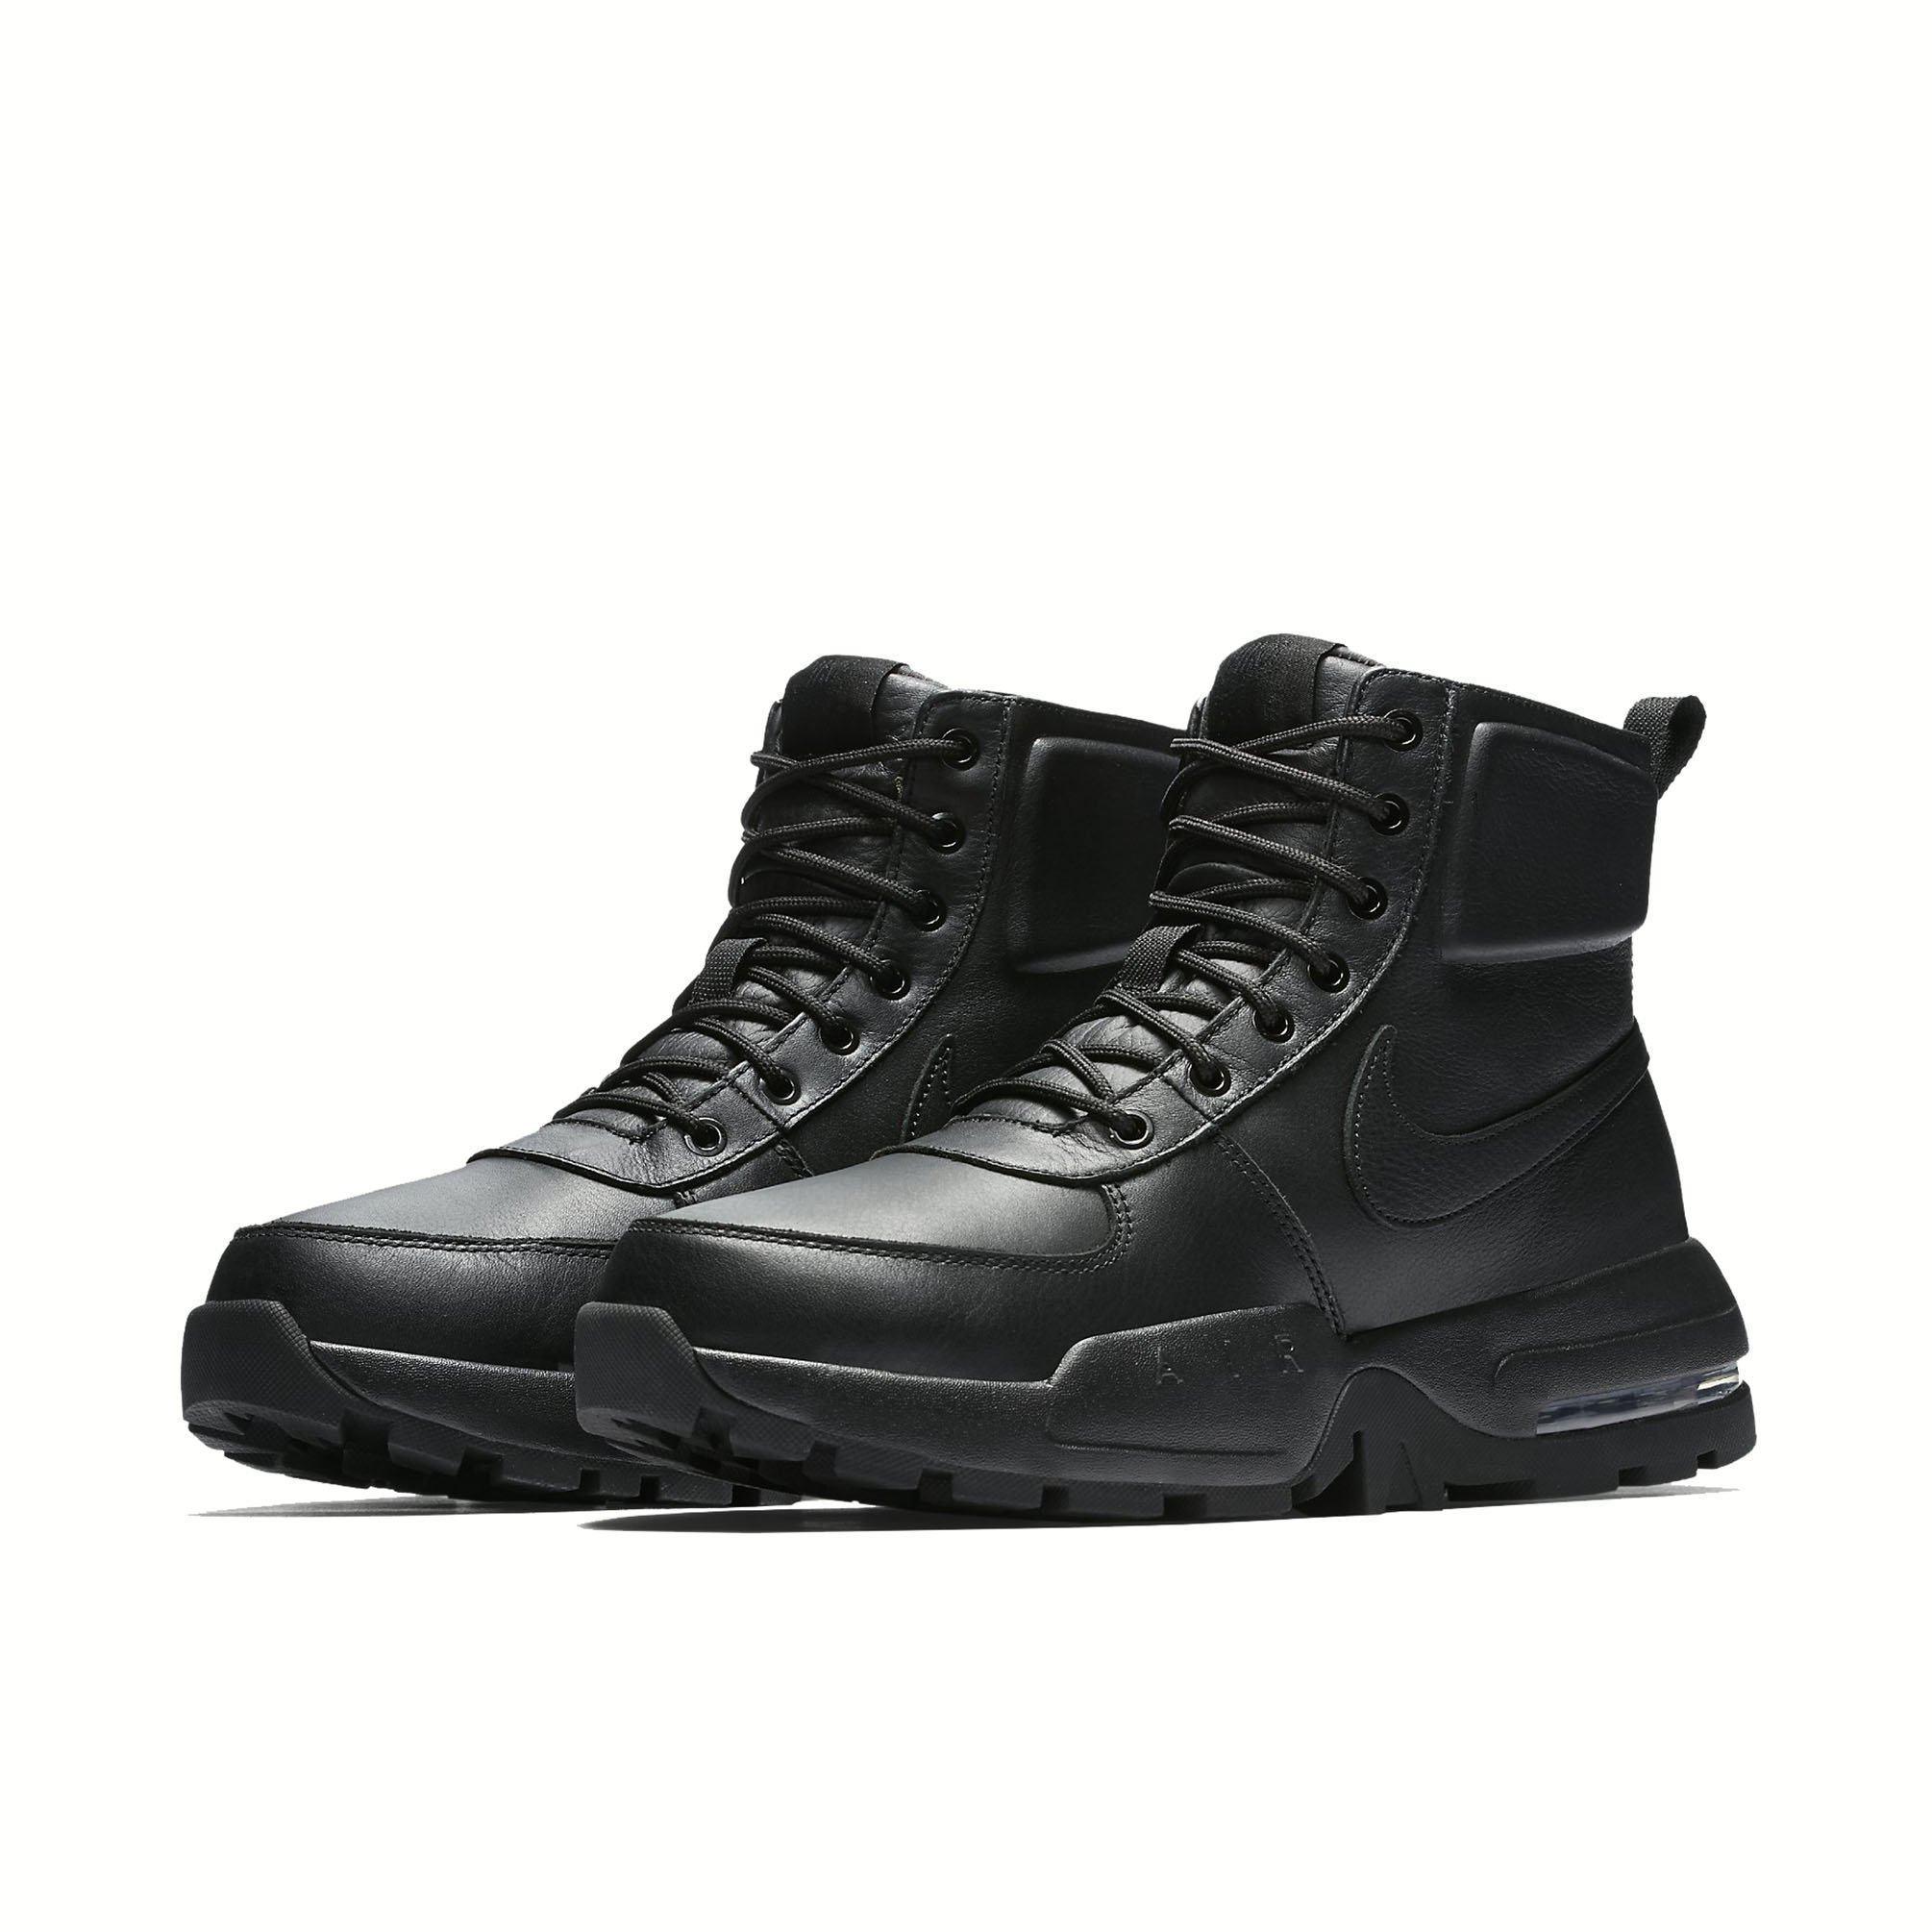 0ca9d26536f1 Galleon - Nike Mens Air Max Goaterra 2. 0 ACG Boots Black Black 916816-001  Size 11. 5